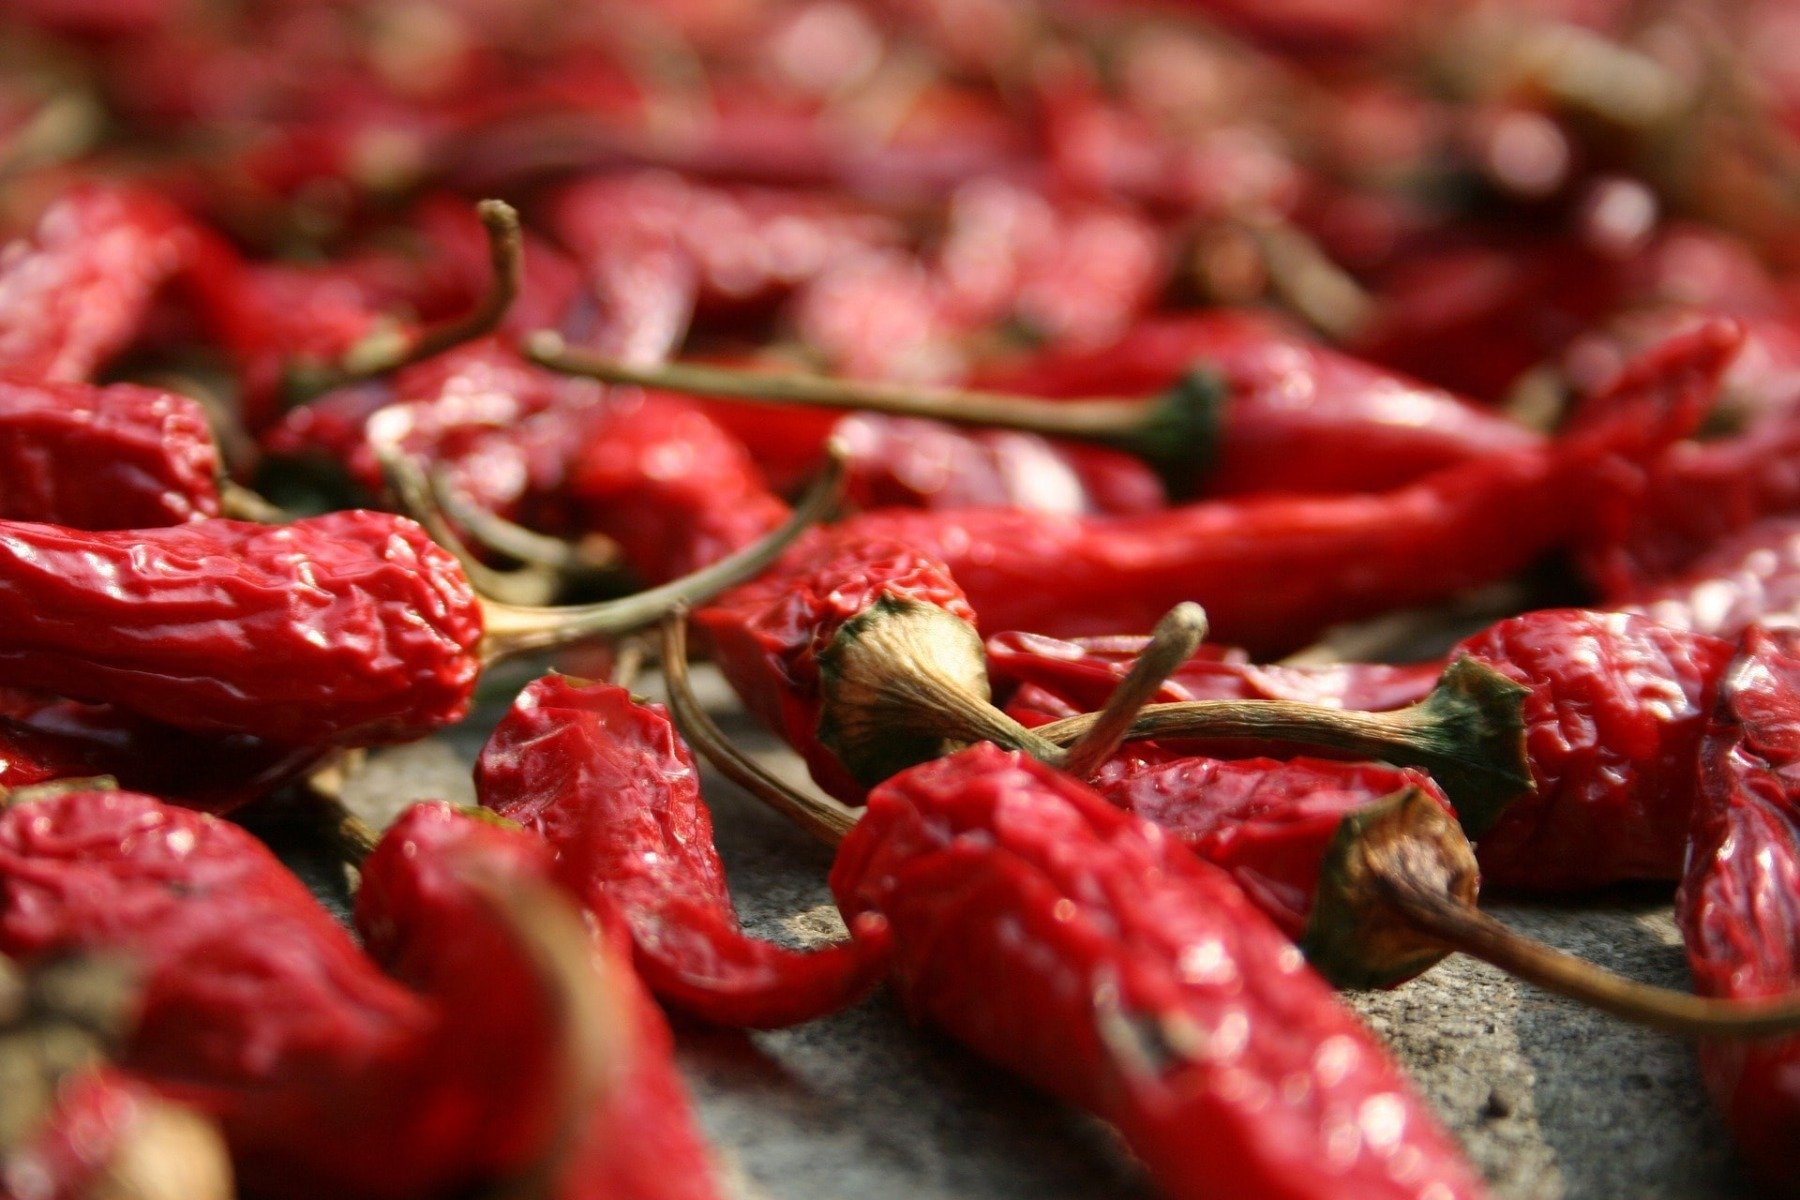 Capsaicin - a component of chili peppers